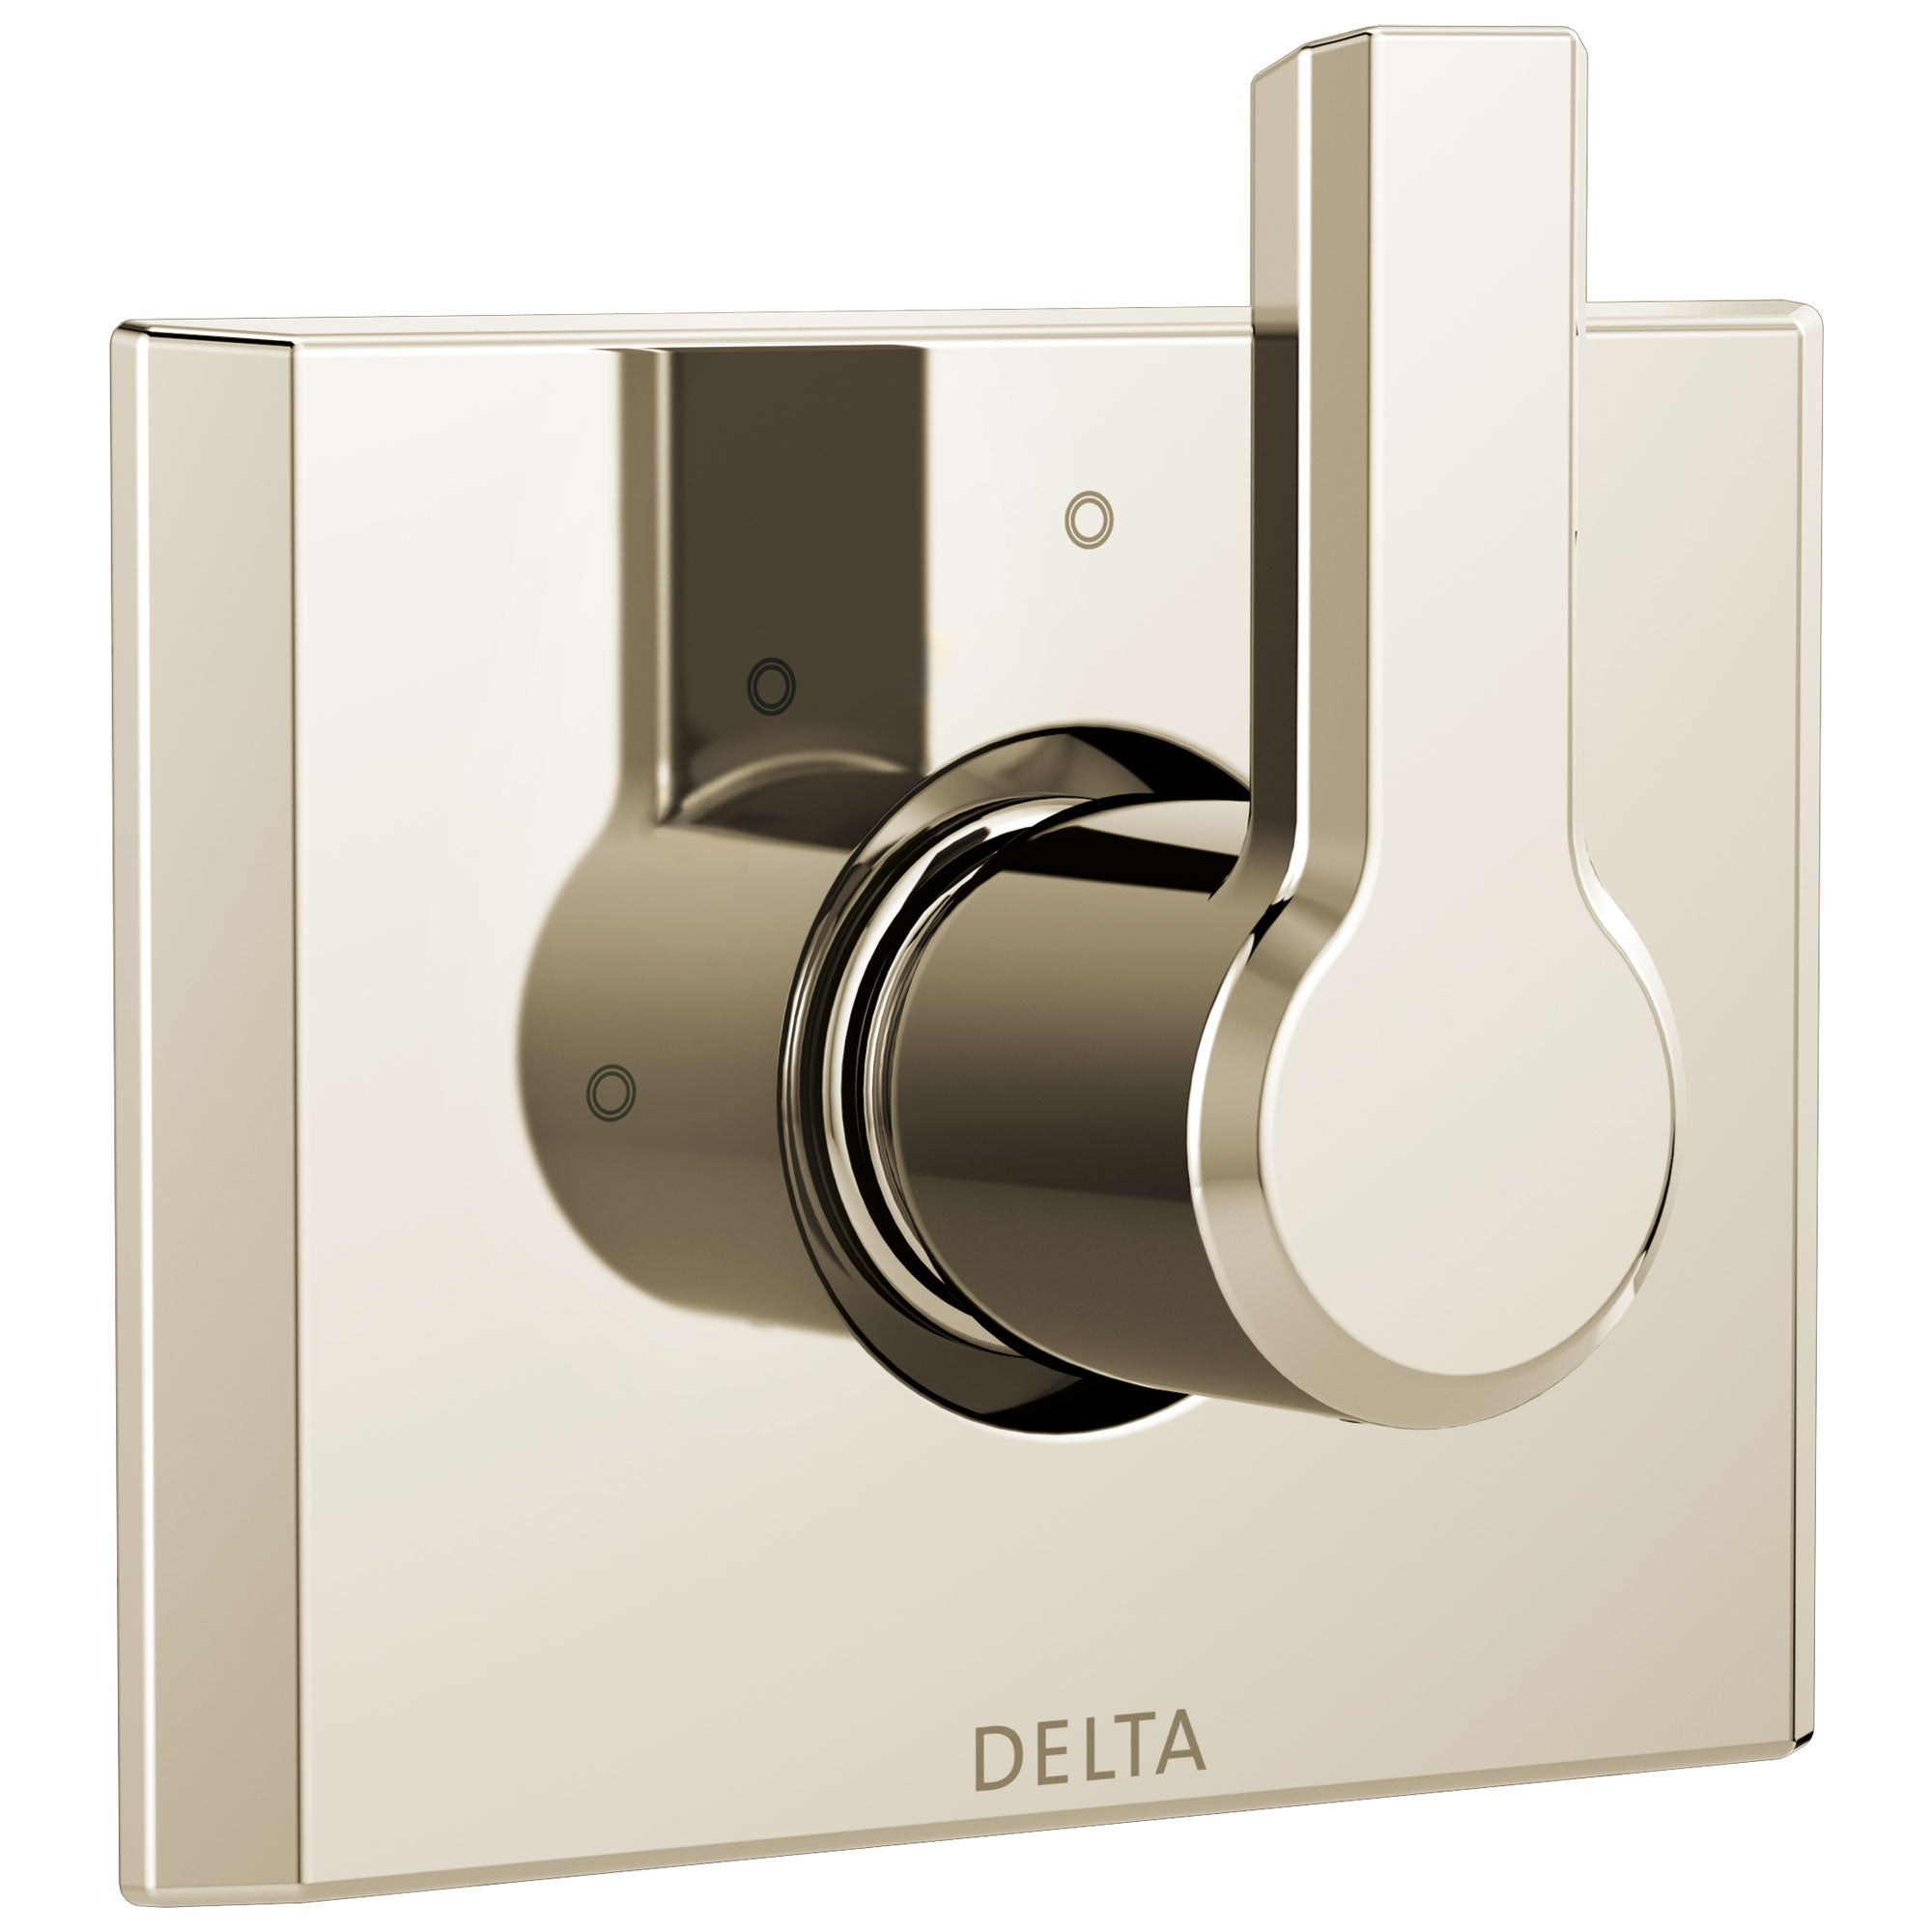 Delta Pivotal Modern Polished Nickel Finish 3-Setting 2 Outlet Port Shower System Diverter Includes Lever Handle and Rough-in Valve D3571V